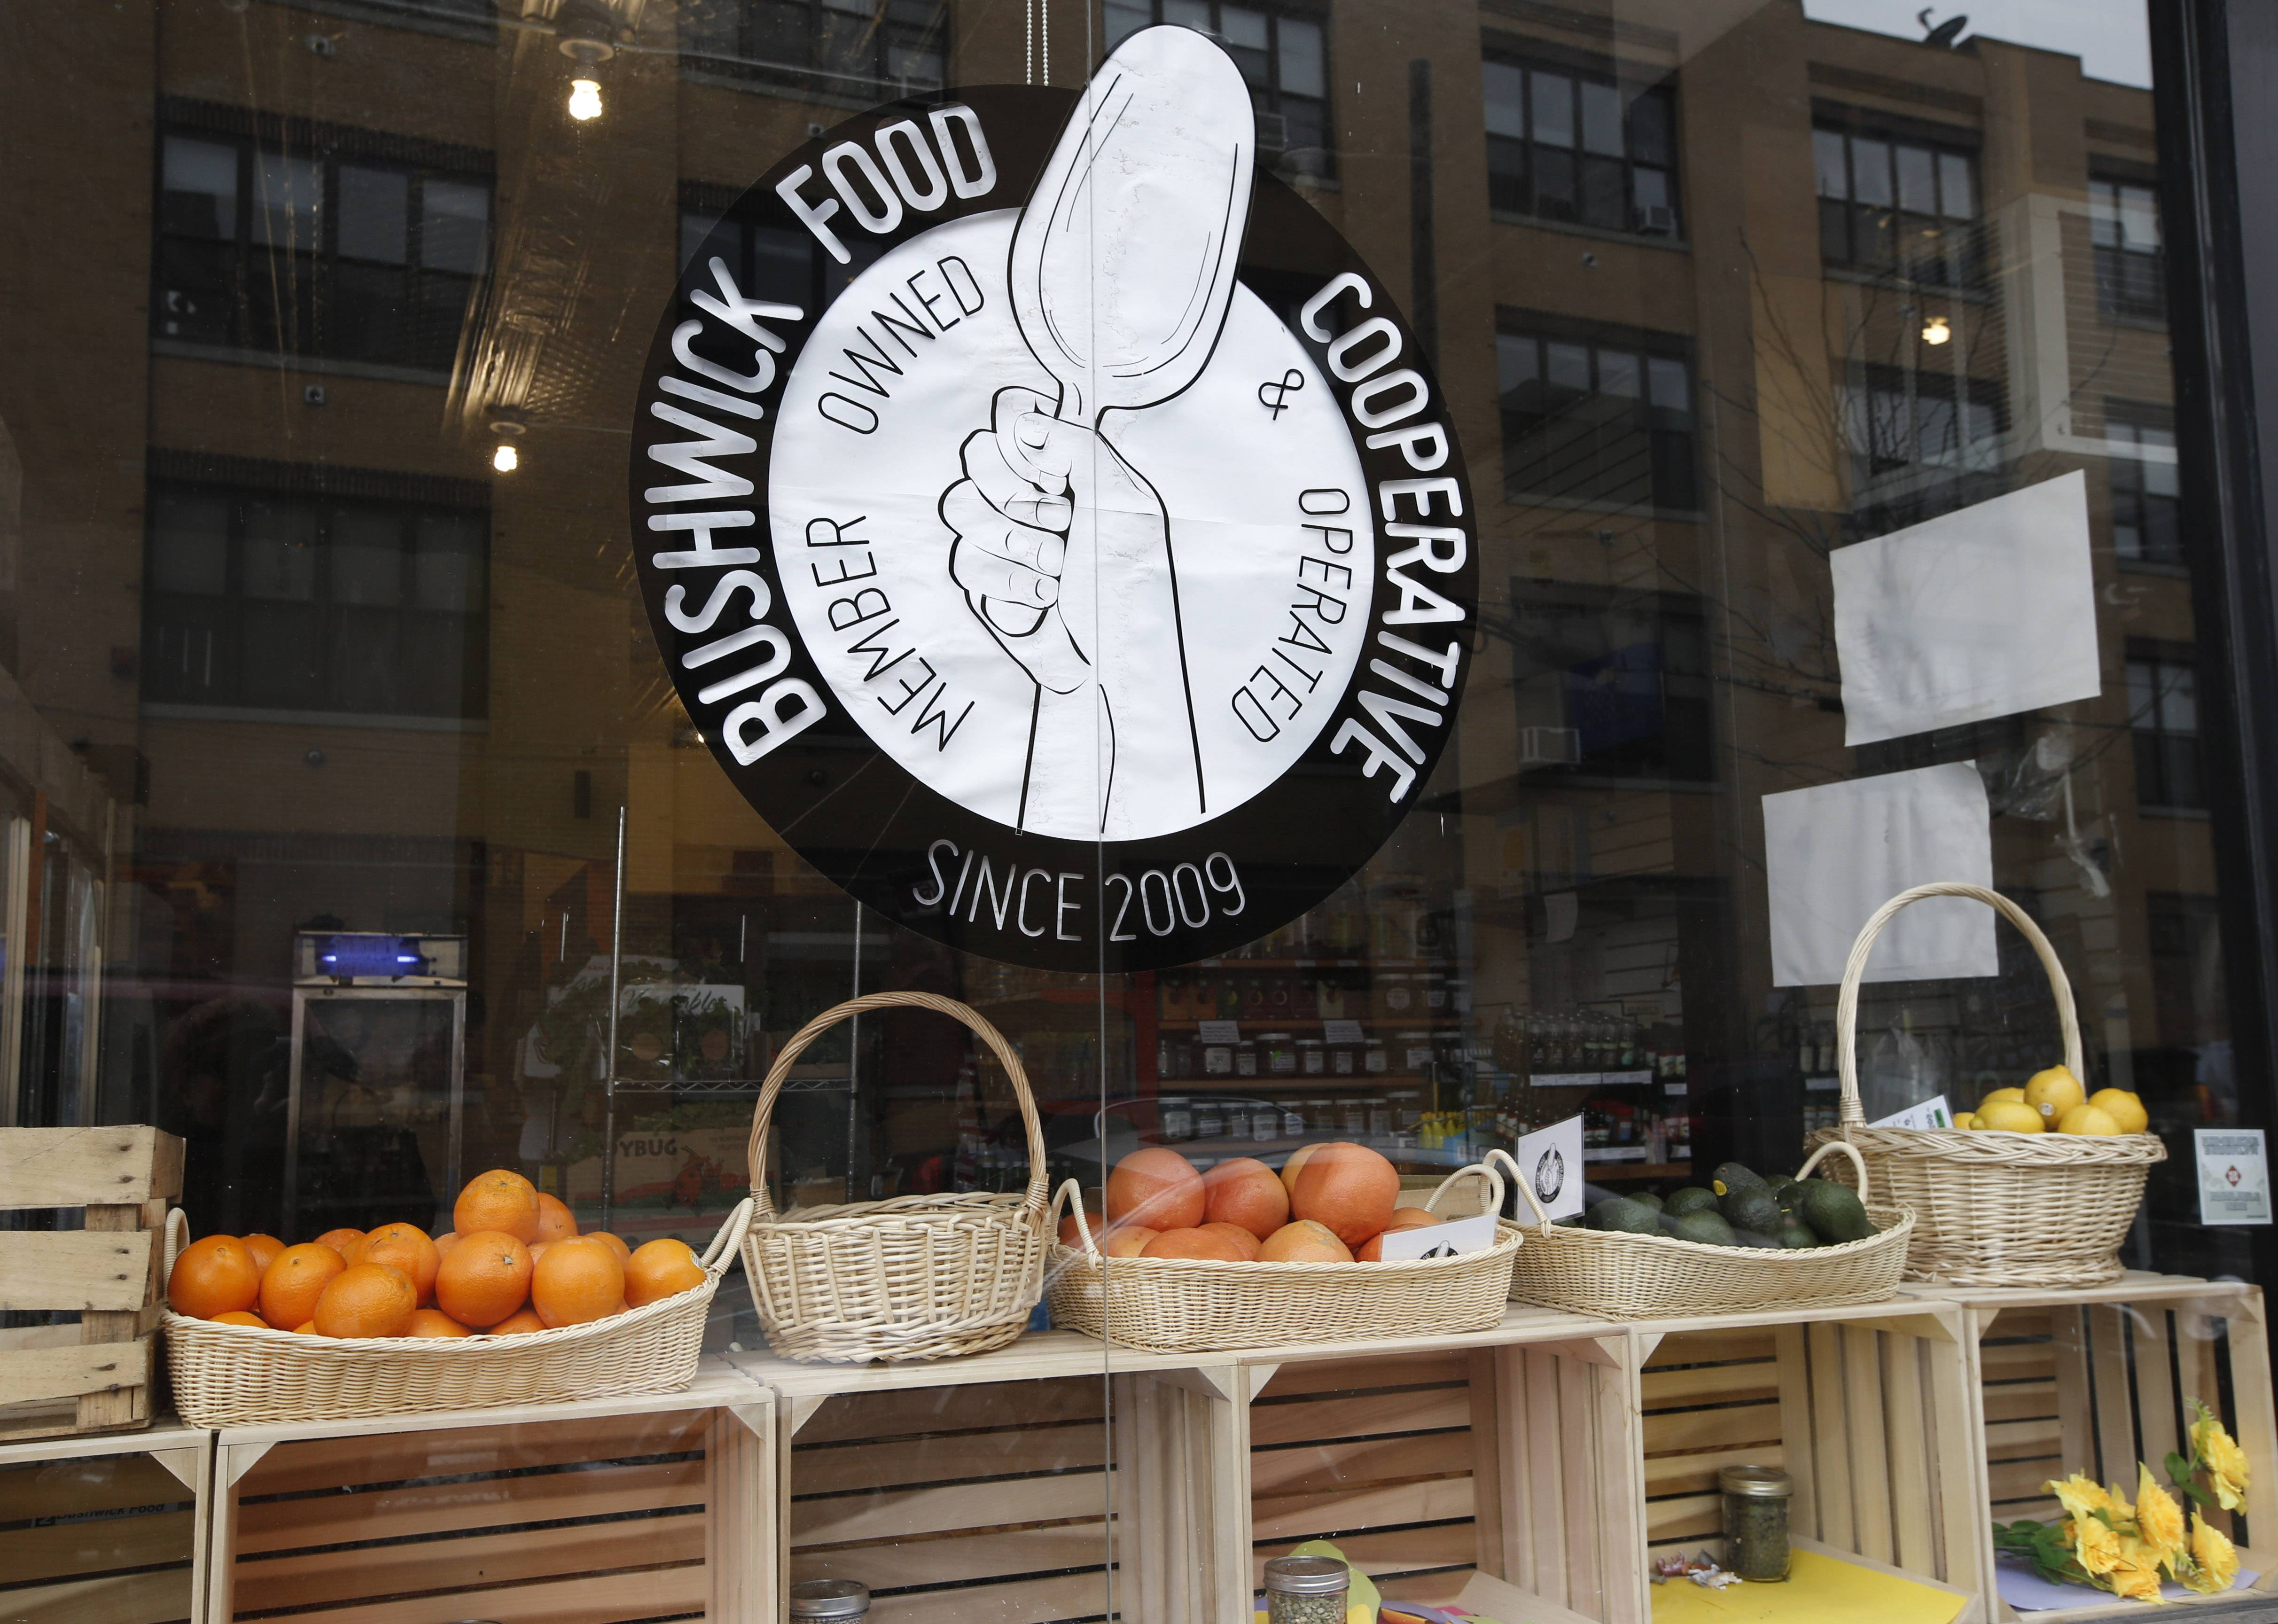 The Bushwick Food Cooperative is located at the Shops at the Loom, on the site of a former textile mill in Brooklyn's Bushwick neighborhood in New York.